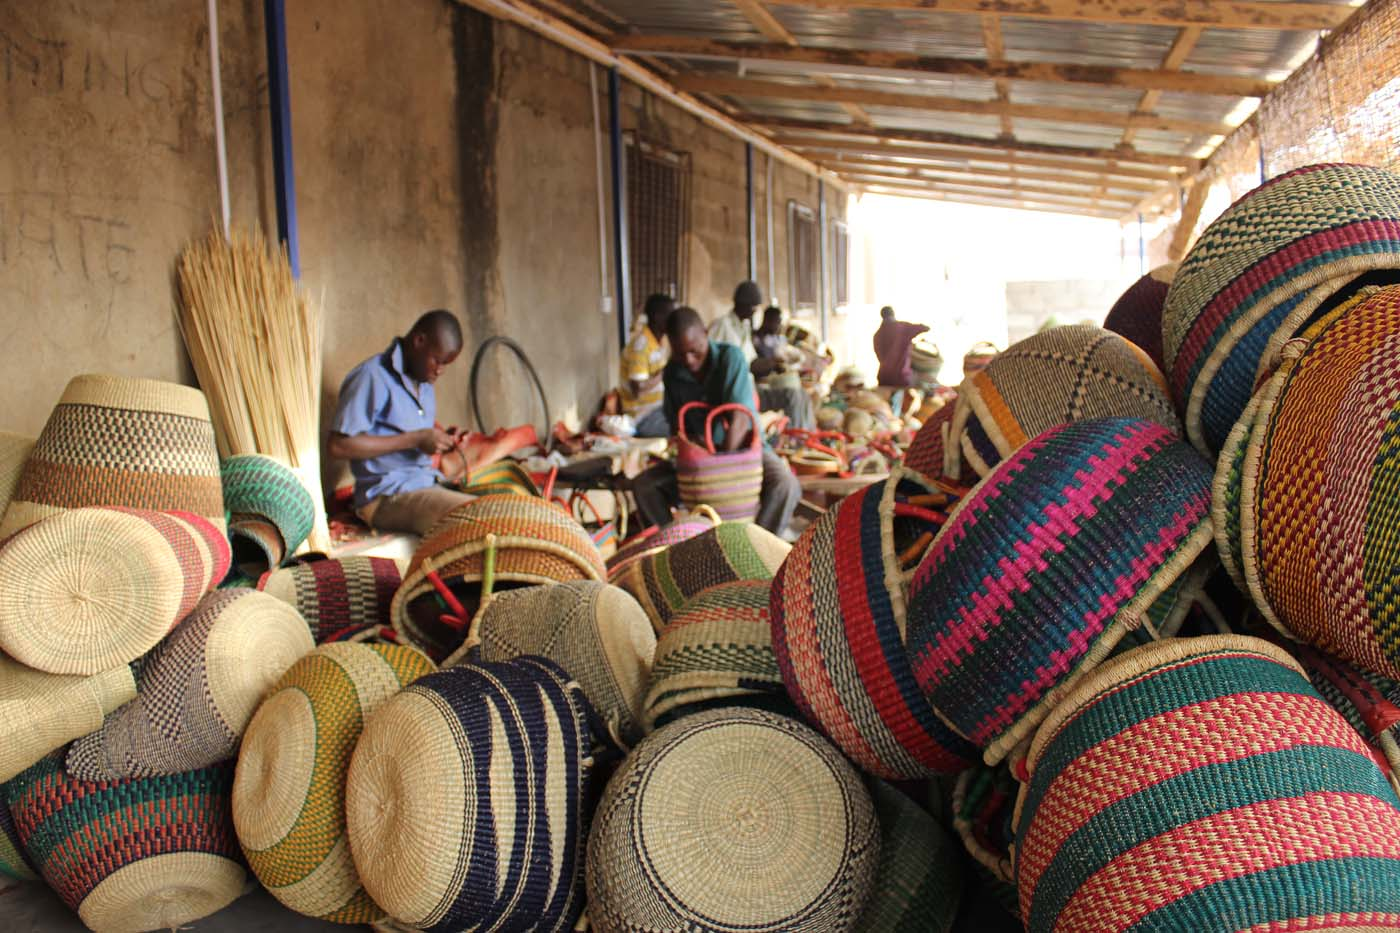 Leatherworkers adding leather handles to baskets